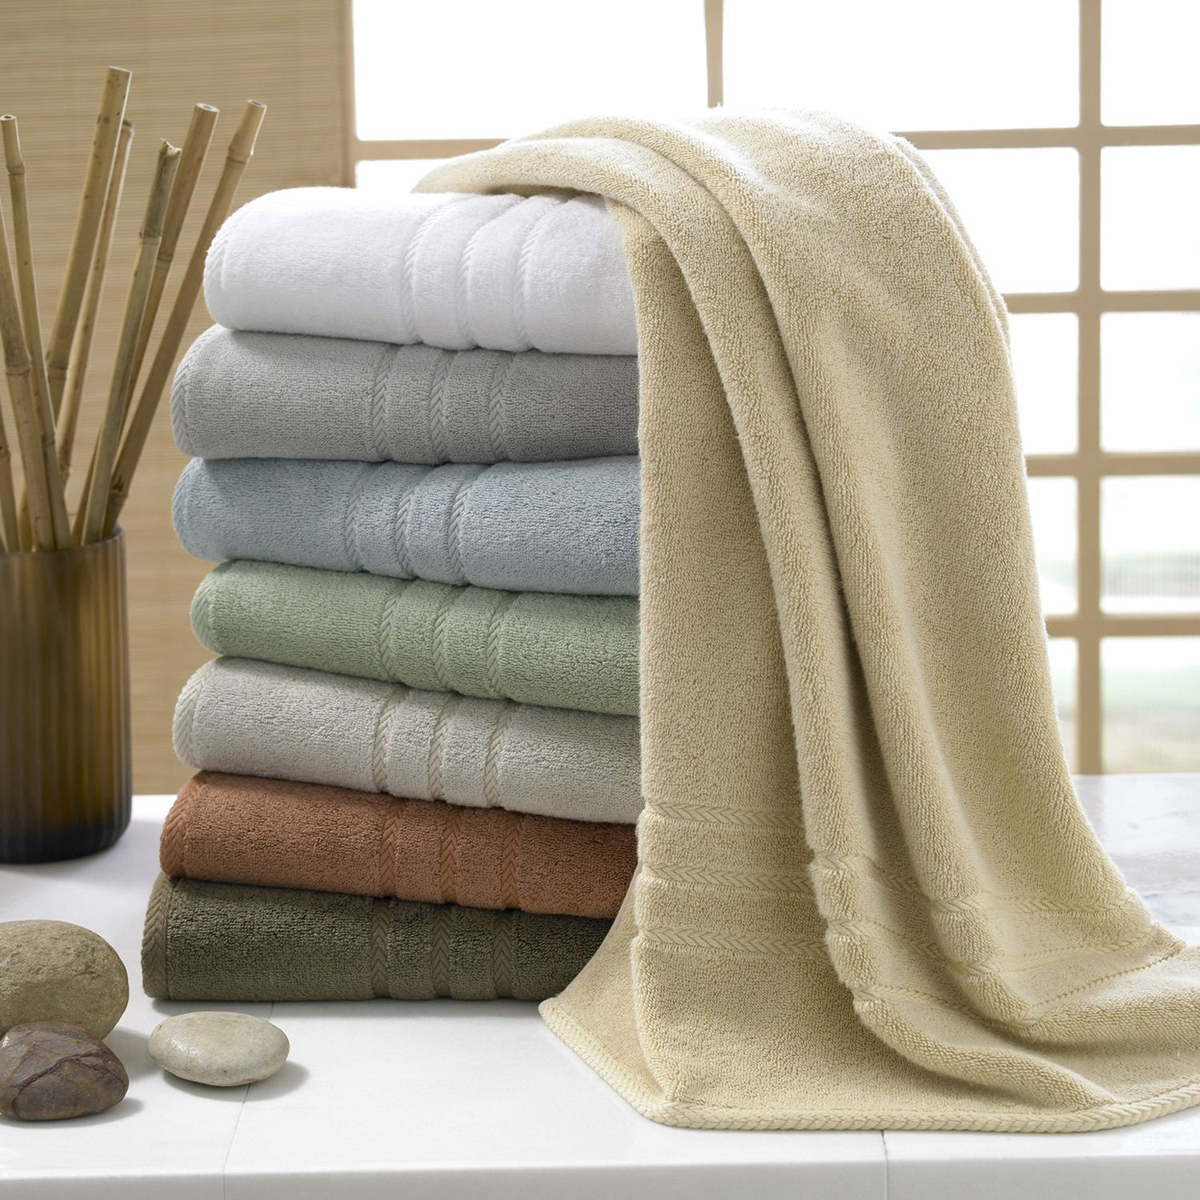 Towels. Towels   Hotel Textile Products Suppliers   Linen manufacturer In